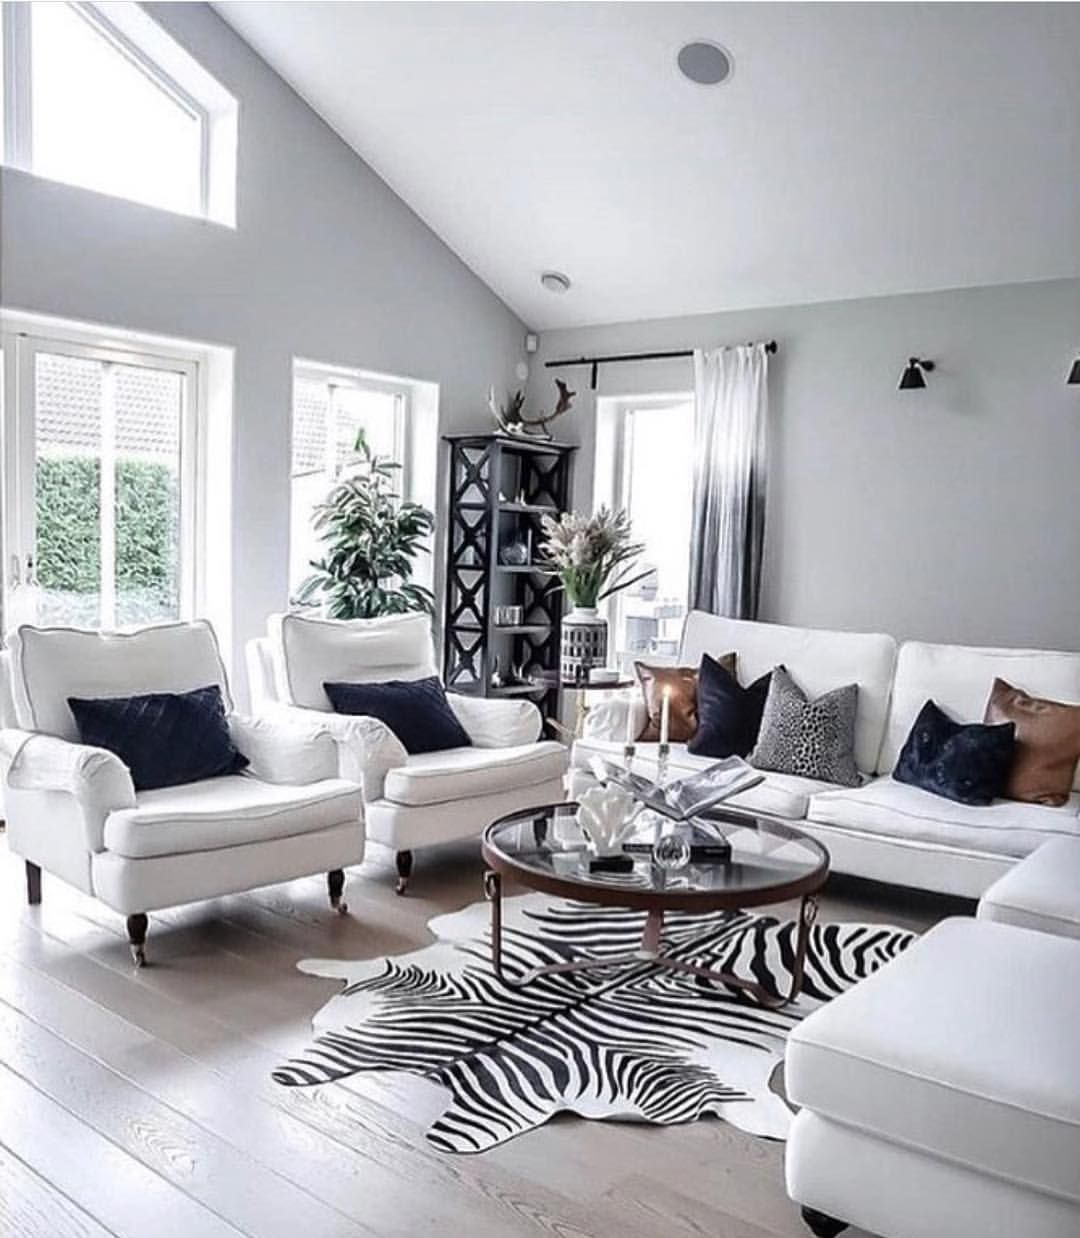 Inspiring Sitting Room Decor Ideas For Inviting And Cozy: What Do You Think Of This Cozy Family Living Space? Cool